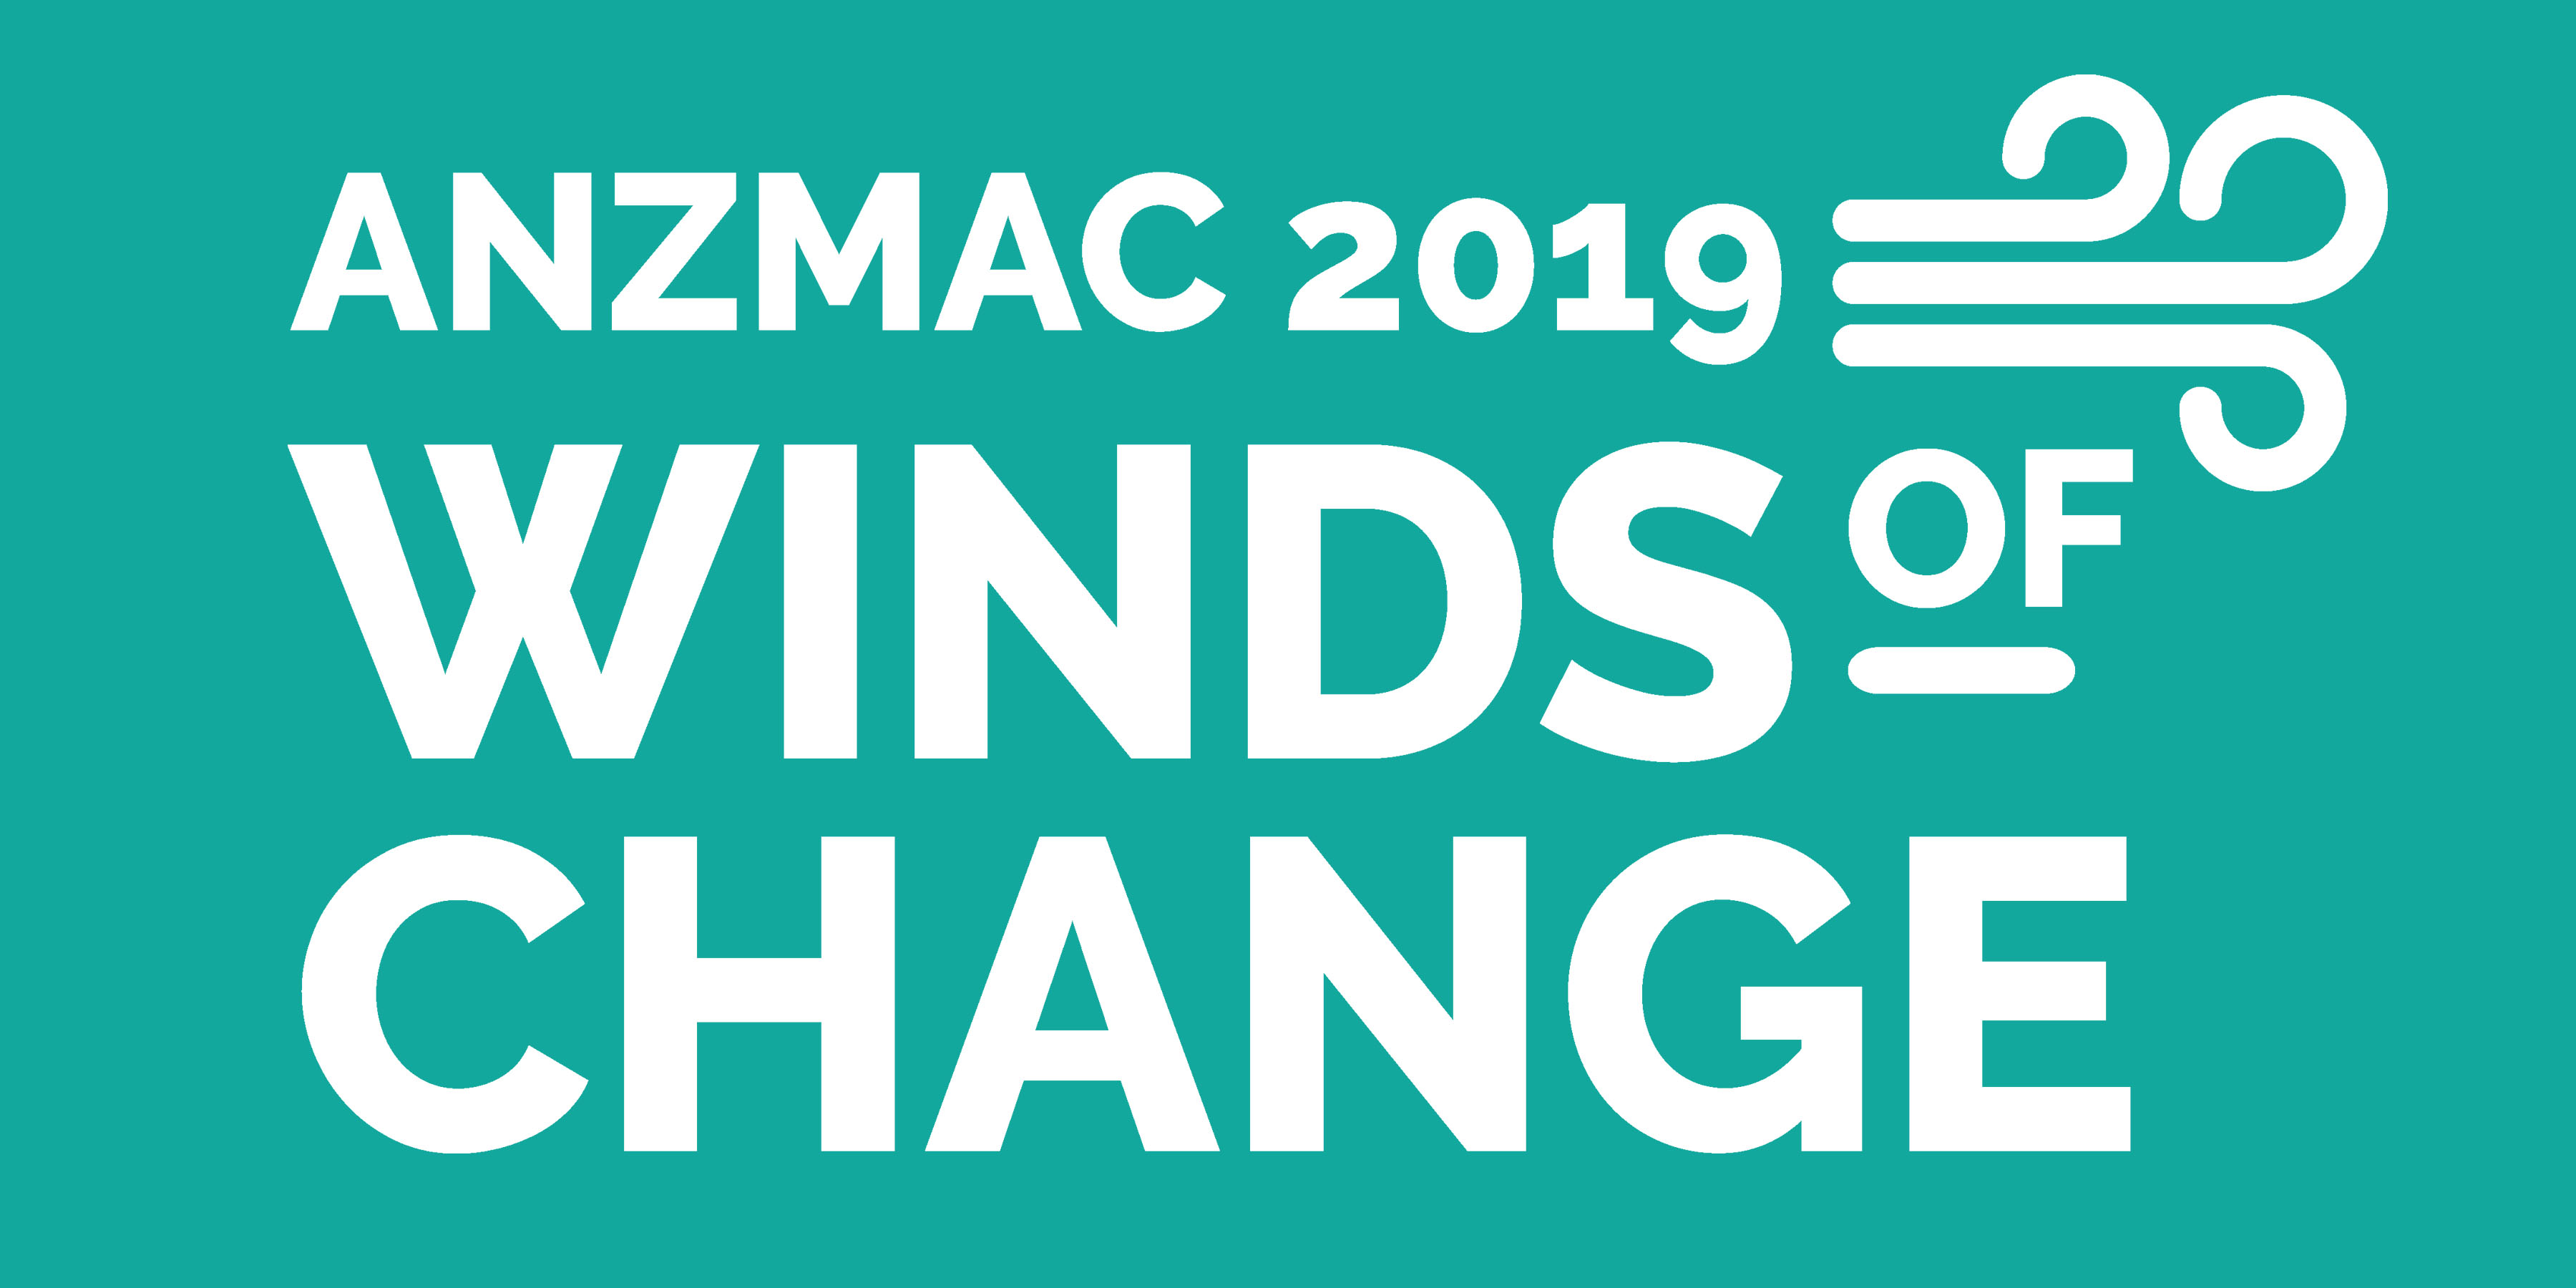 The logo for the 2019 ANZMAC conference